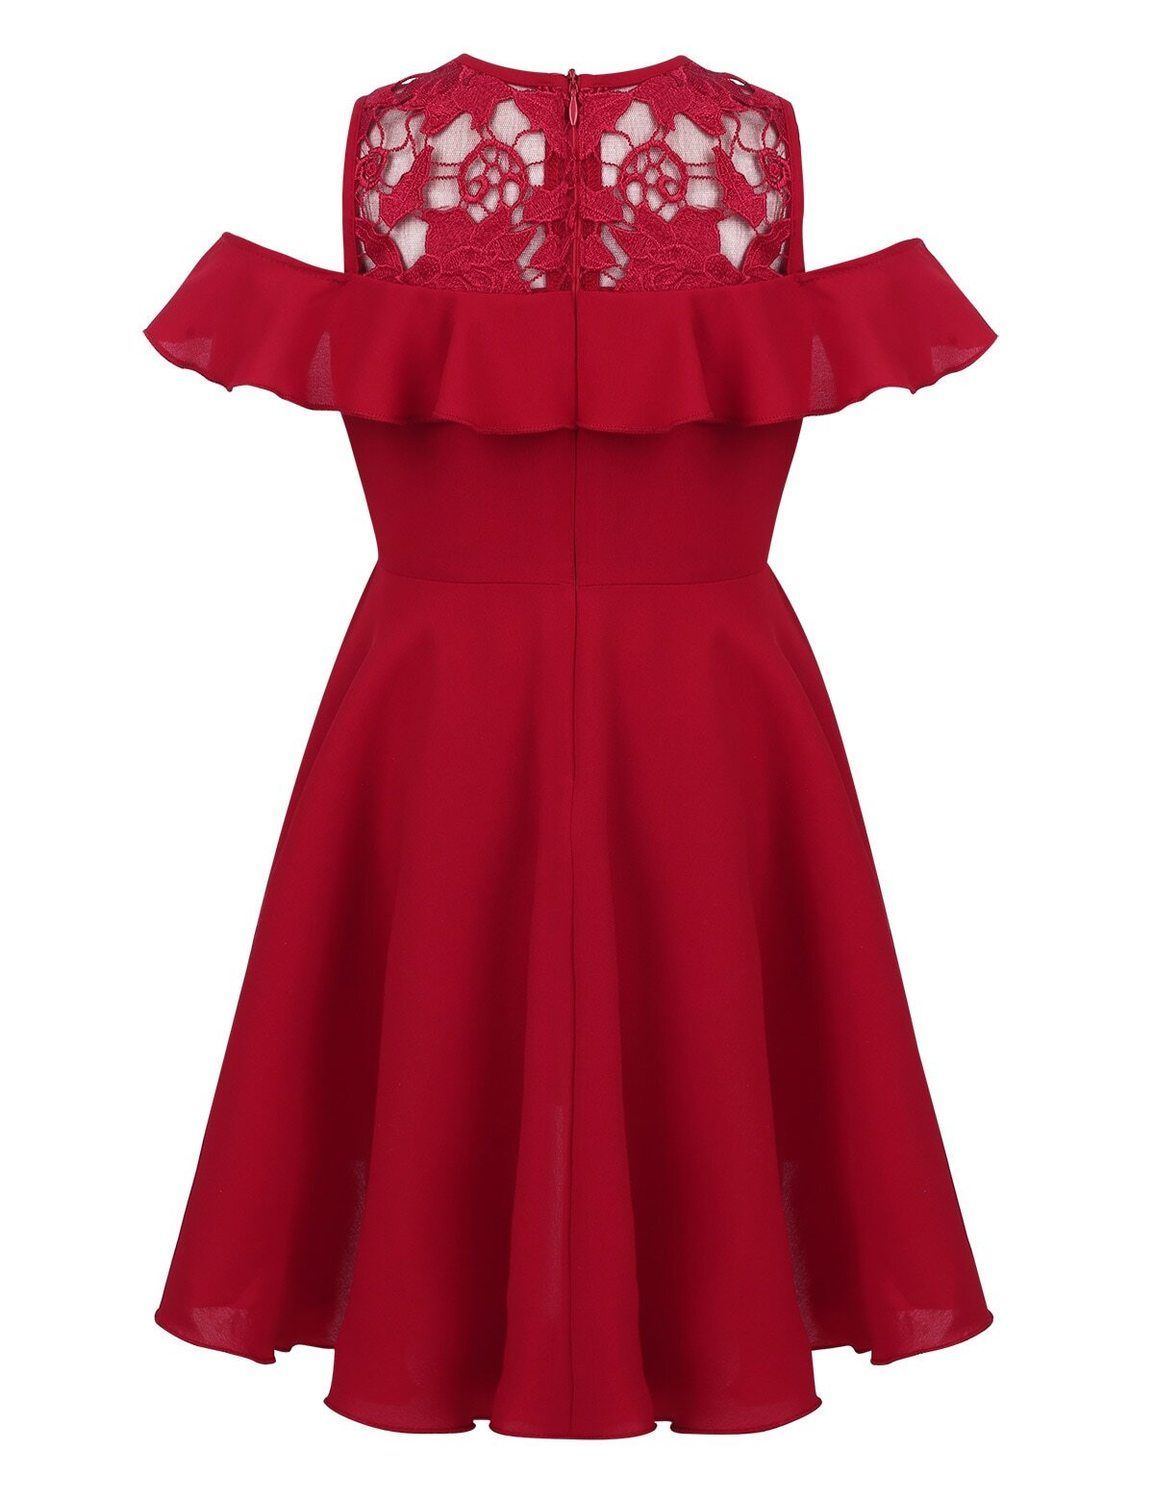 Party dresses for 7 year olds in dark red - Fabulous Bargains